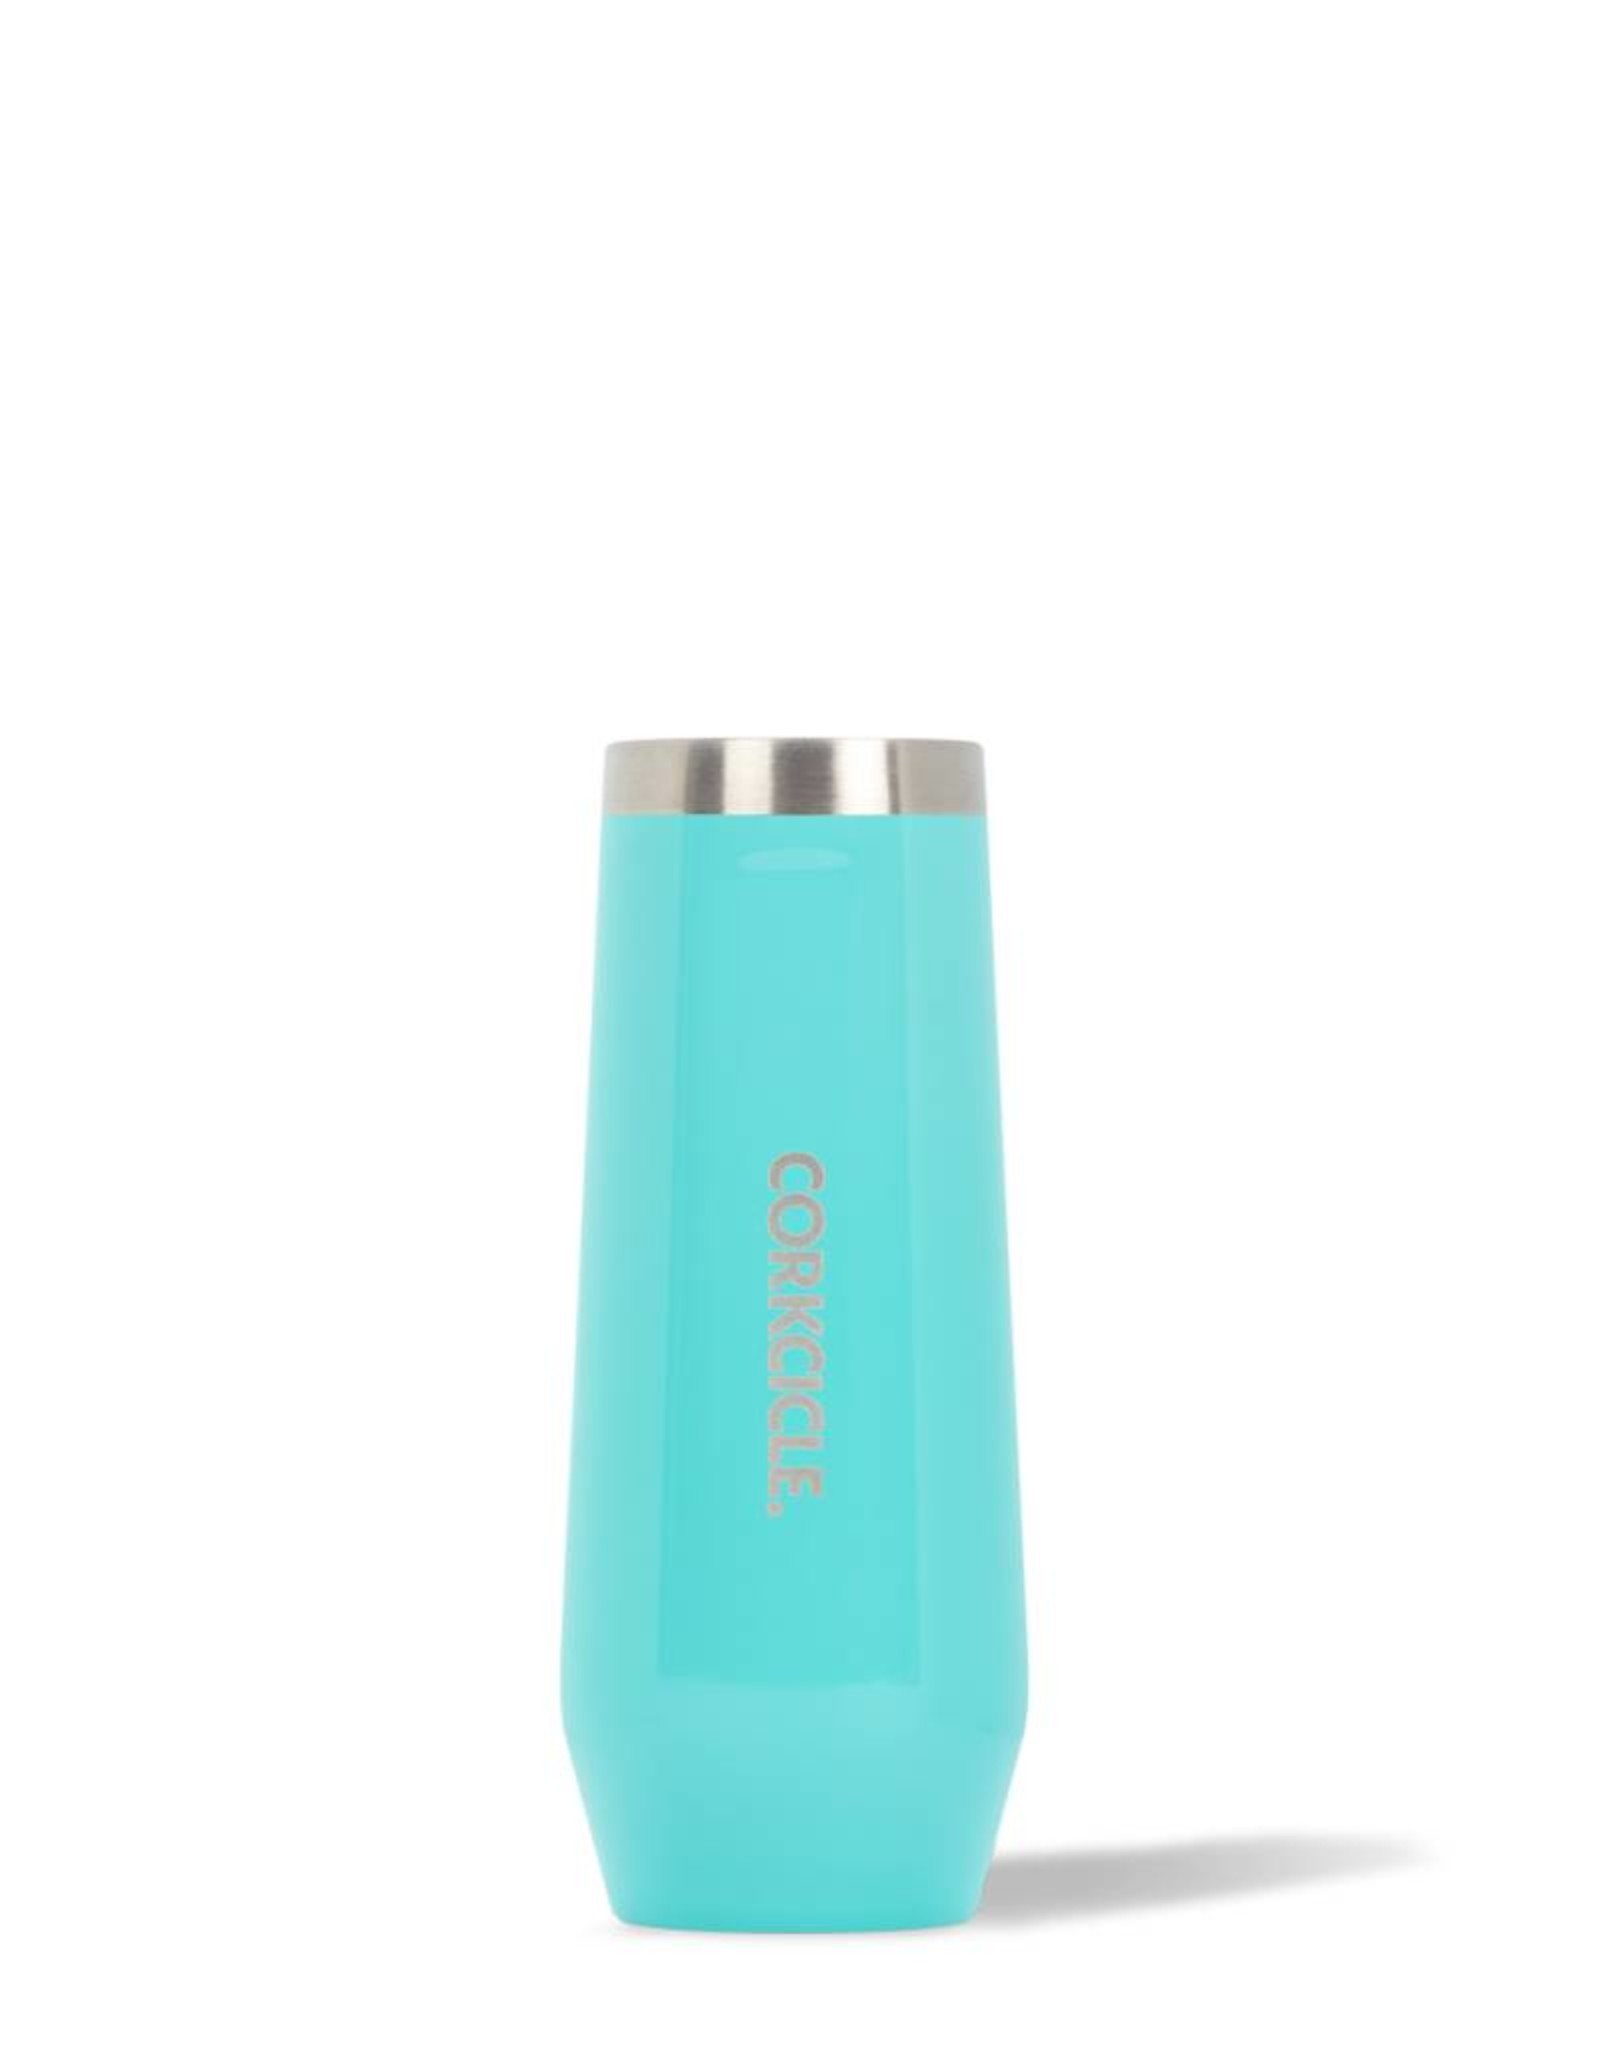 Corkcicle Corkcicle - STEMLESS FLUTE -Gloss Turquoise - 7oz